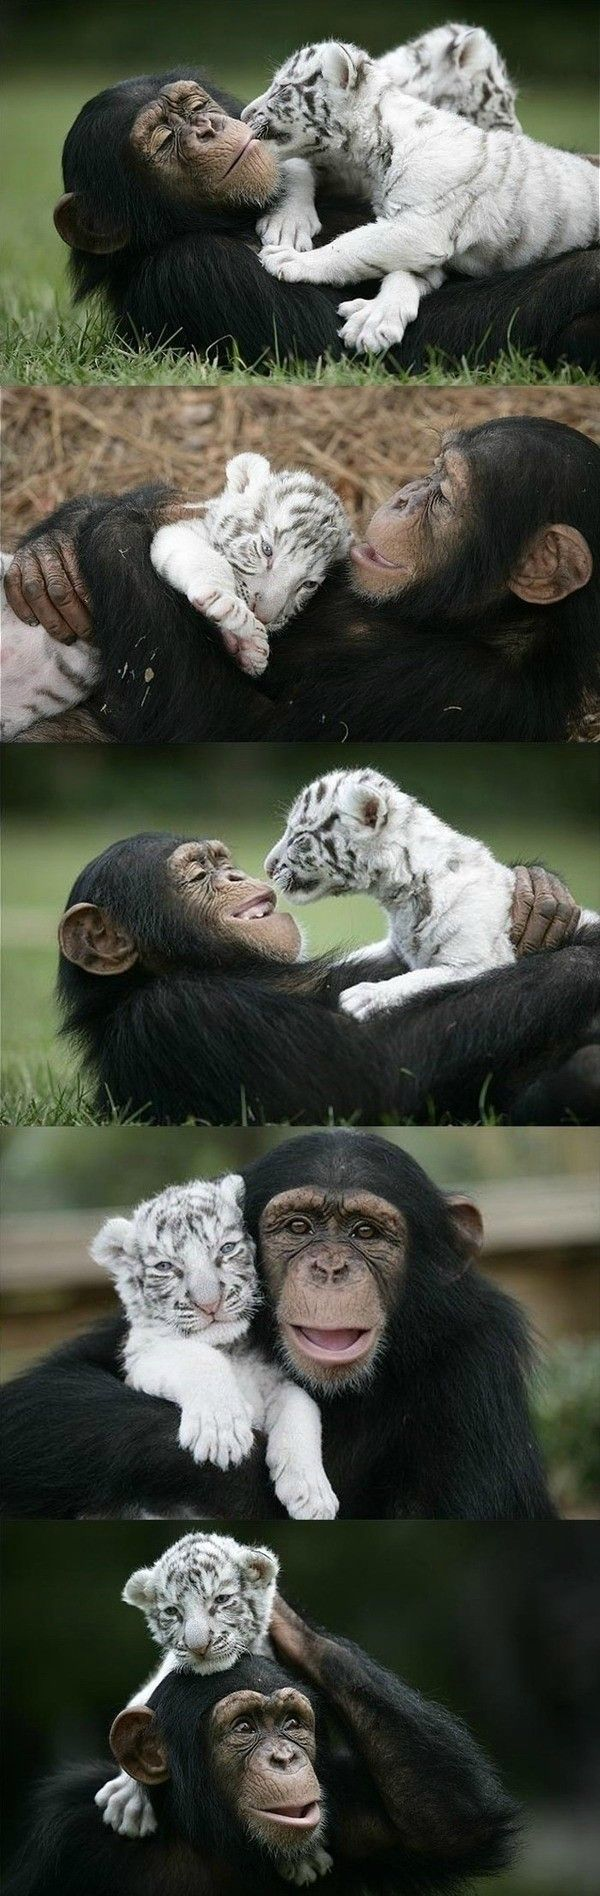 Chimp and baby tiger: White Tigers, Best Friends, Bestfriends, Baby Animal, Odd Couple, Animal Friends, Tigers Cubs, Baby Tigers, Monkey